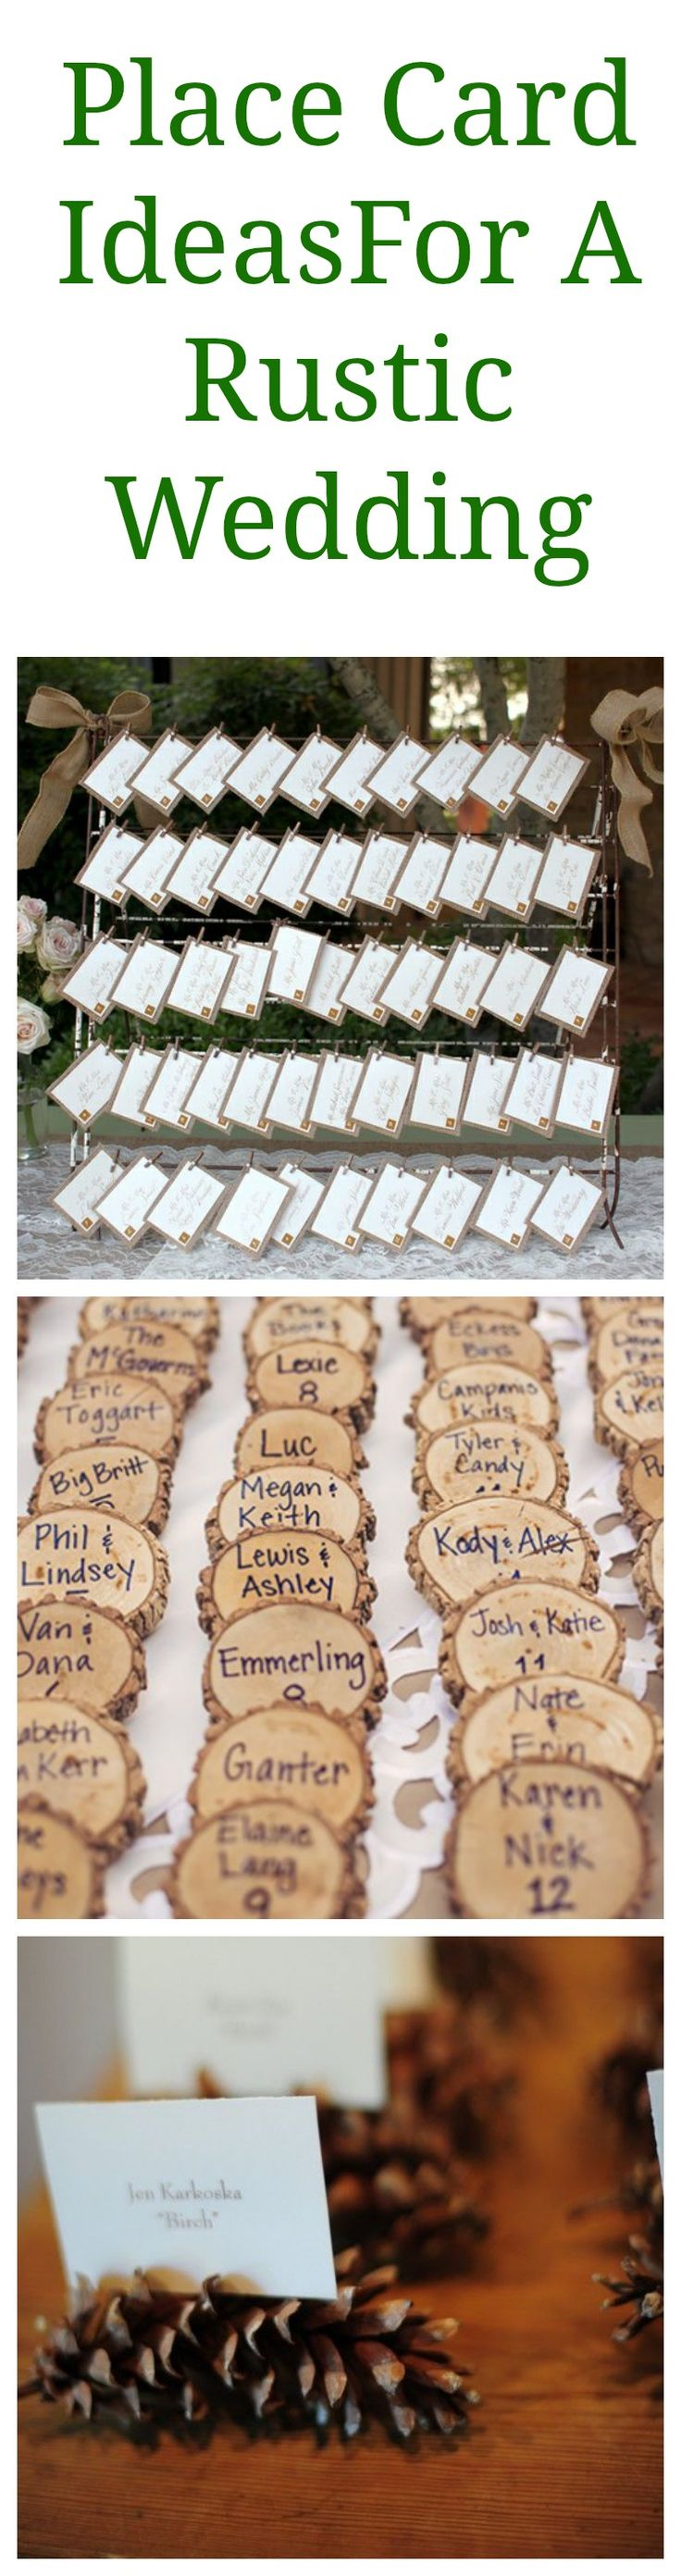 17 best ideas about rustic place cards on pinterest for Place card for wedding